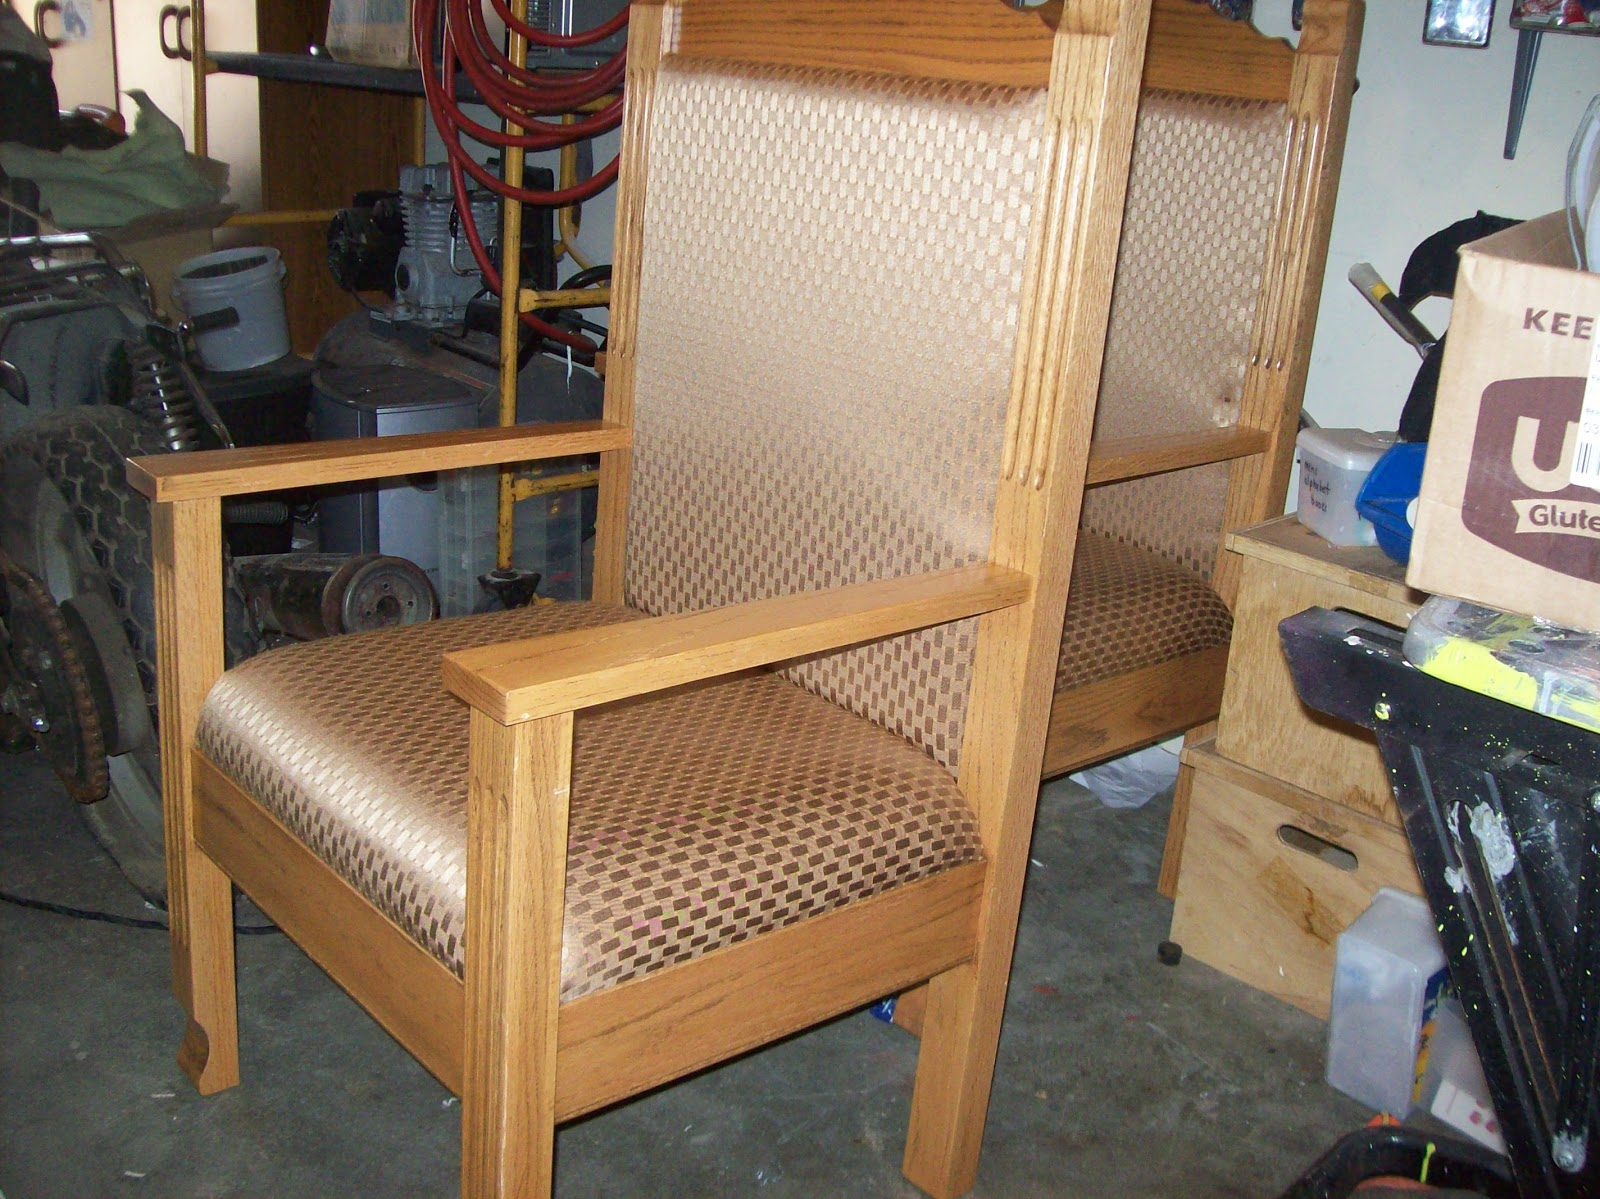 Church Items For Sale: 2 Pulpit Chairs For Sale